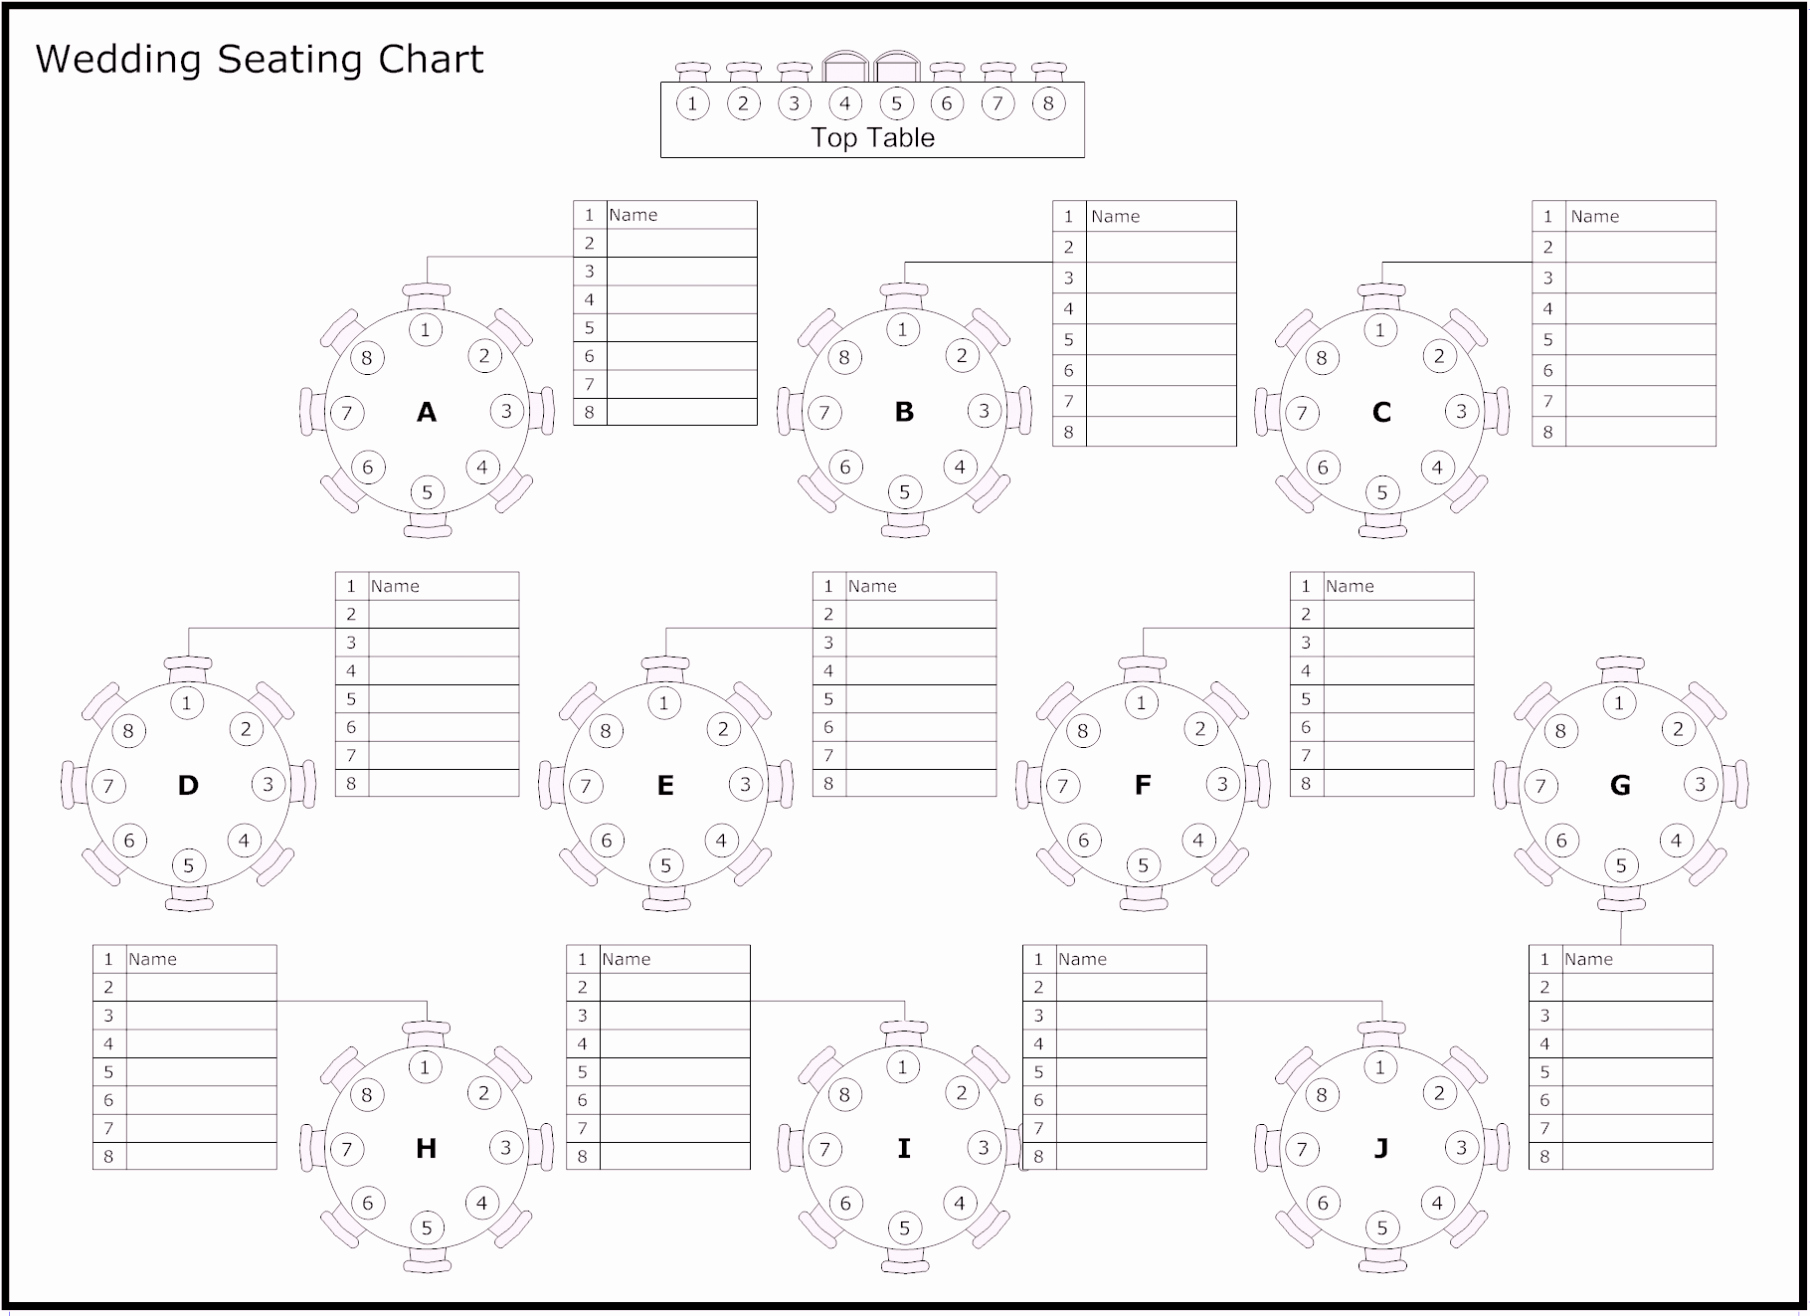 Seating Chart Template Excel Awesome Free Table Of Reception & Wedding Seating Chart Template